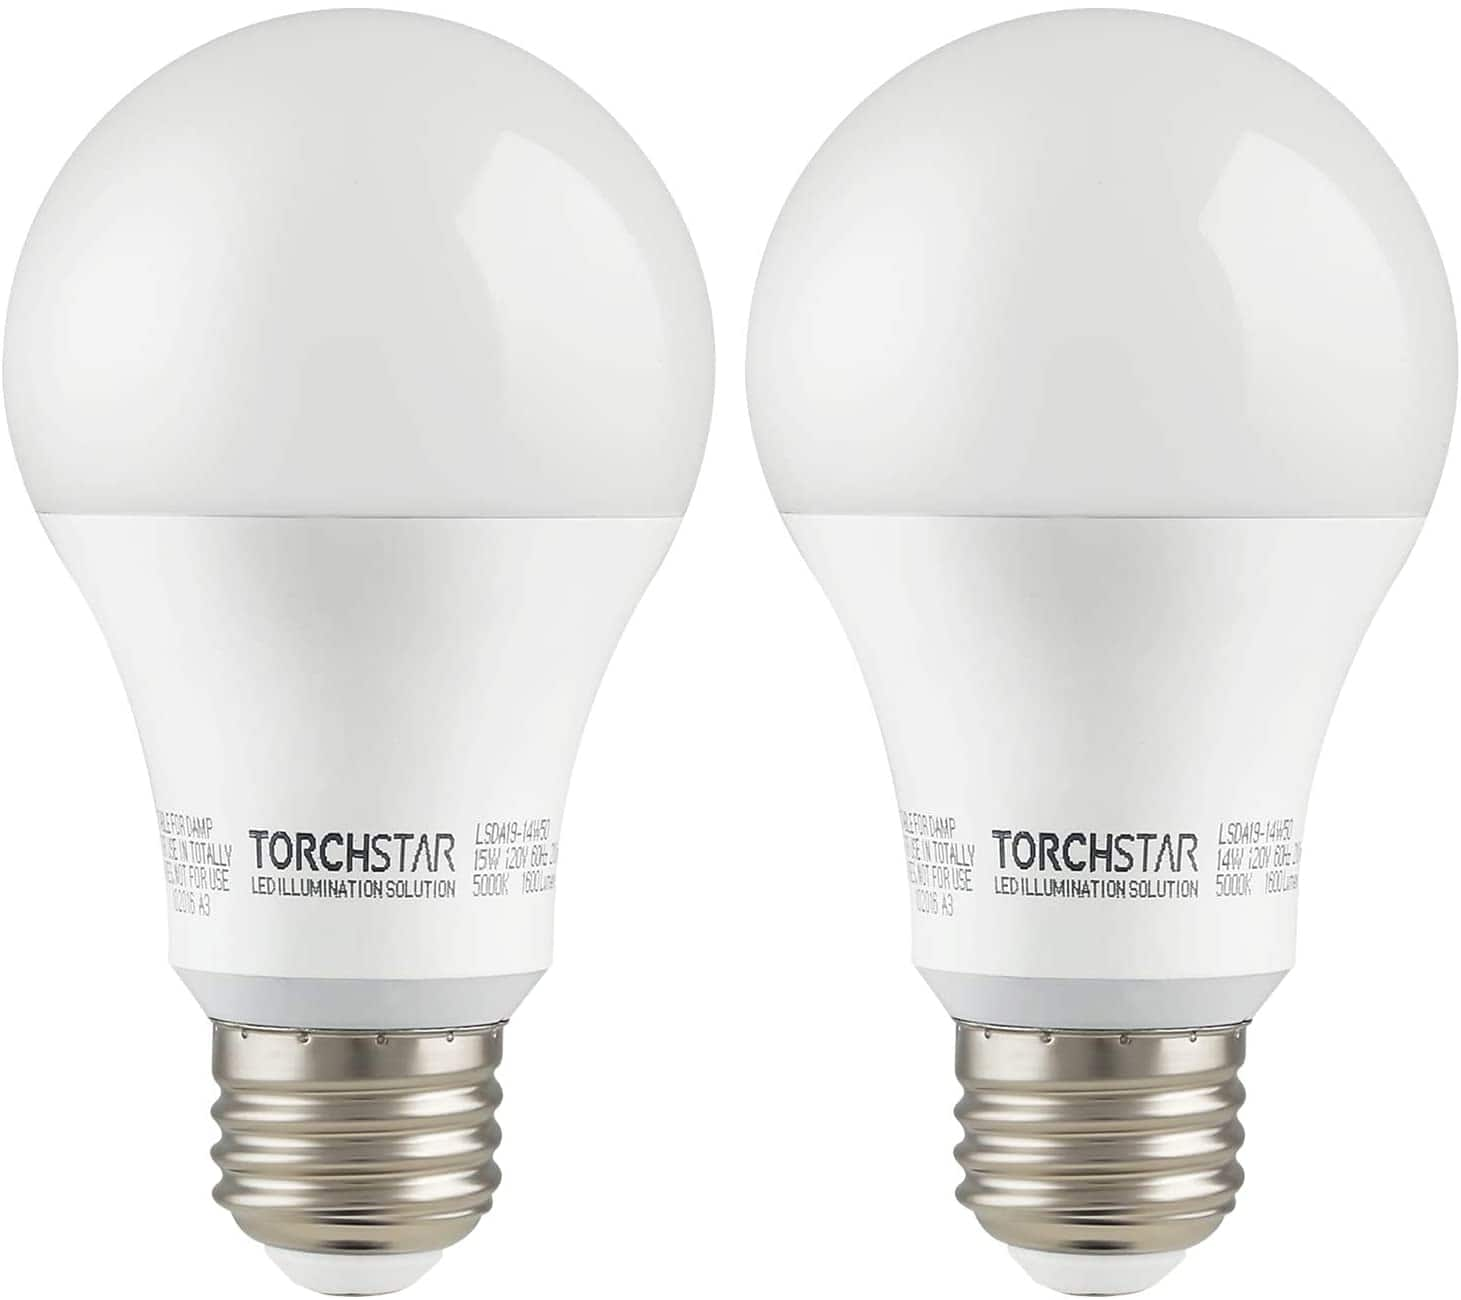 2 Pack/4 Pack 100W Equiv Super Bright Garage Opener A19 LED Bulb Daylight/Warm White- $13.46 + FS